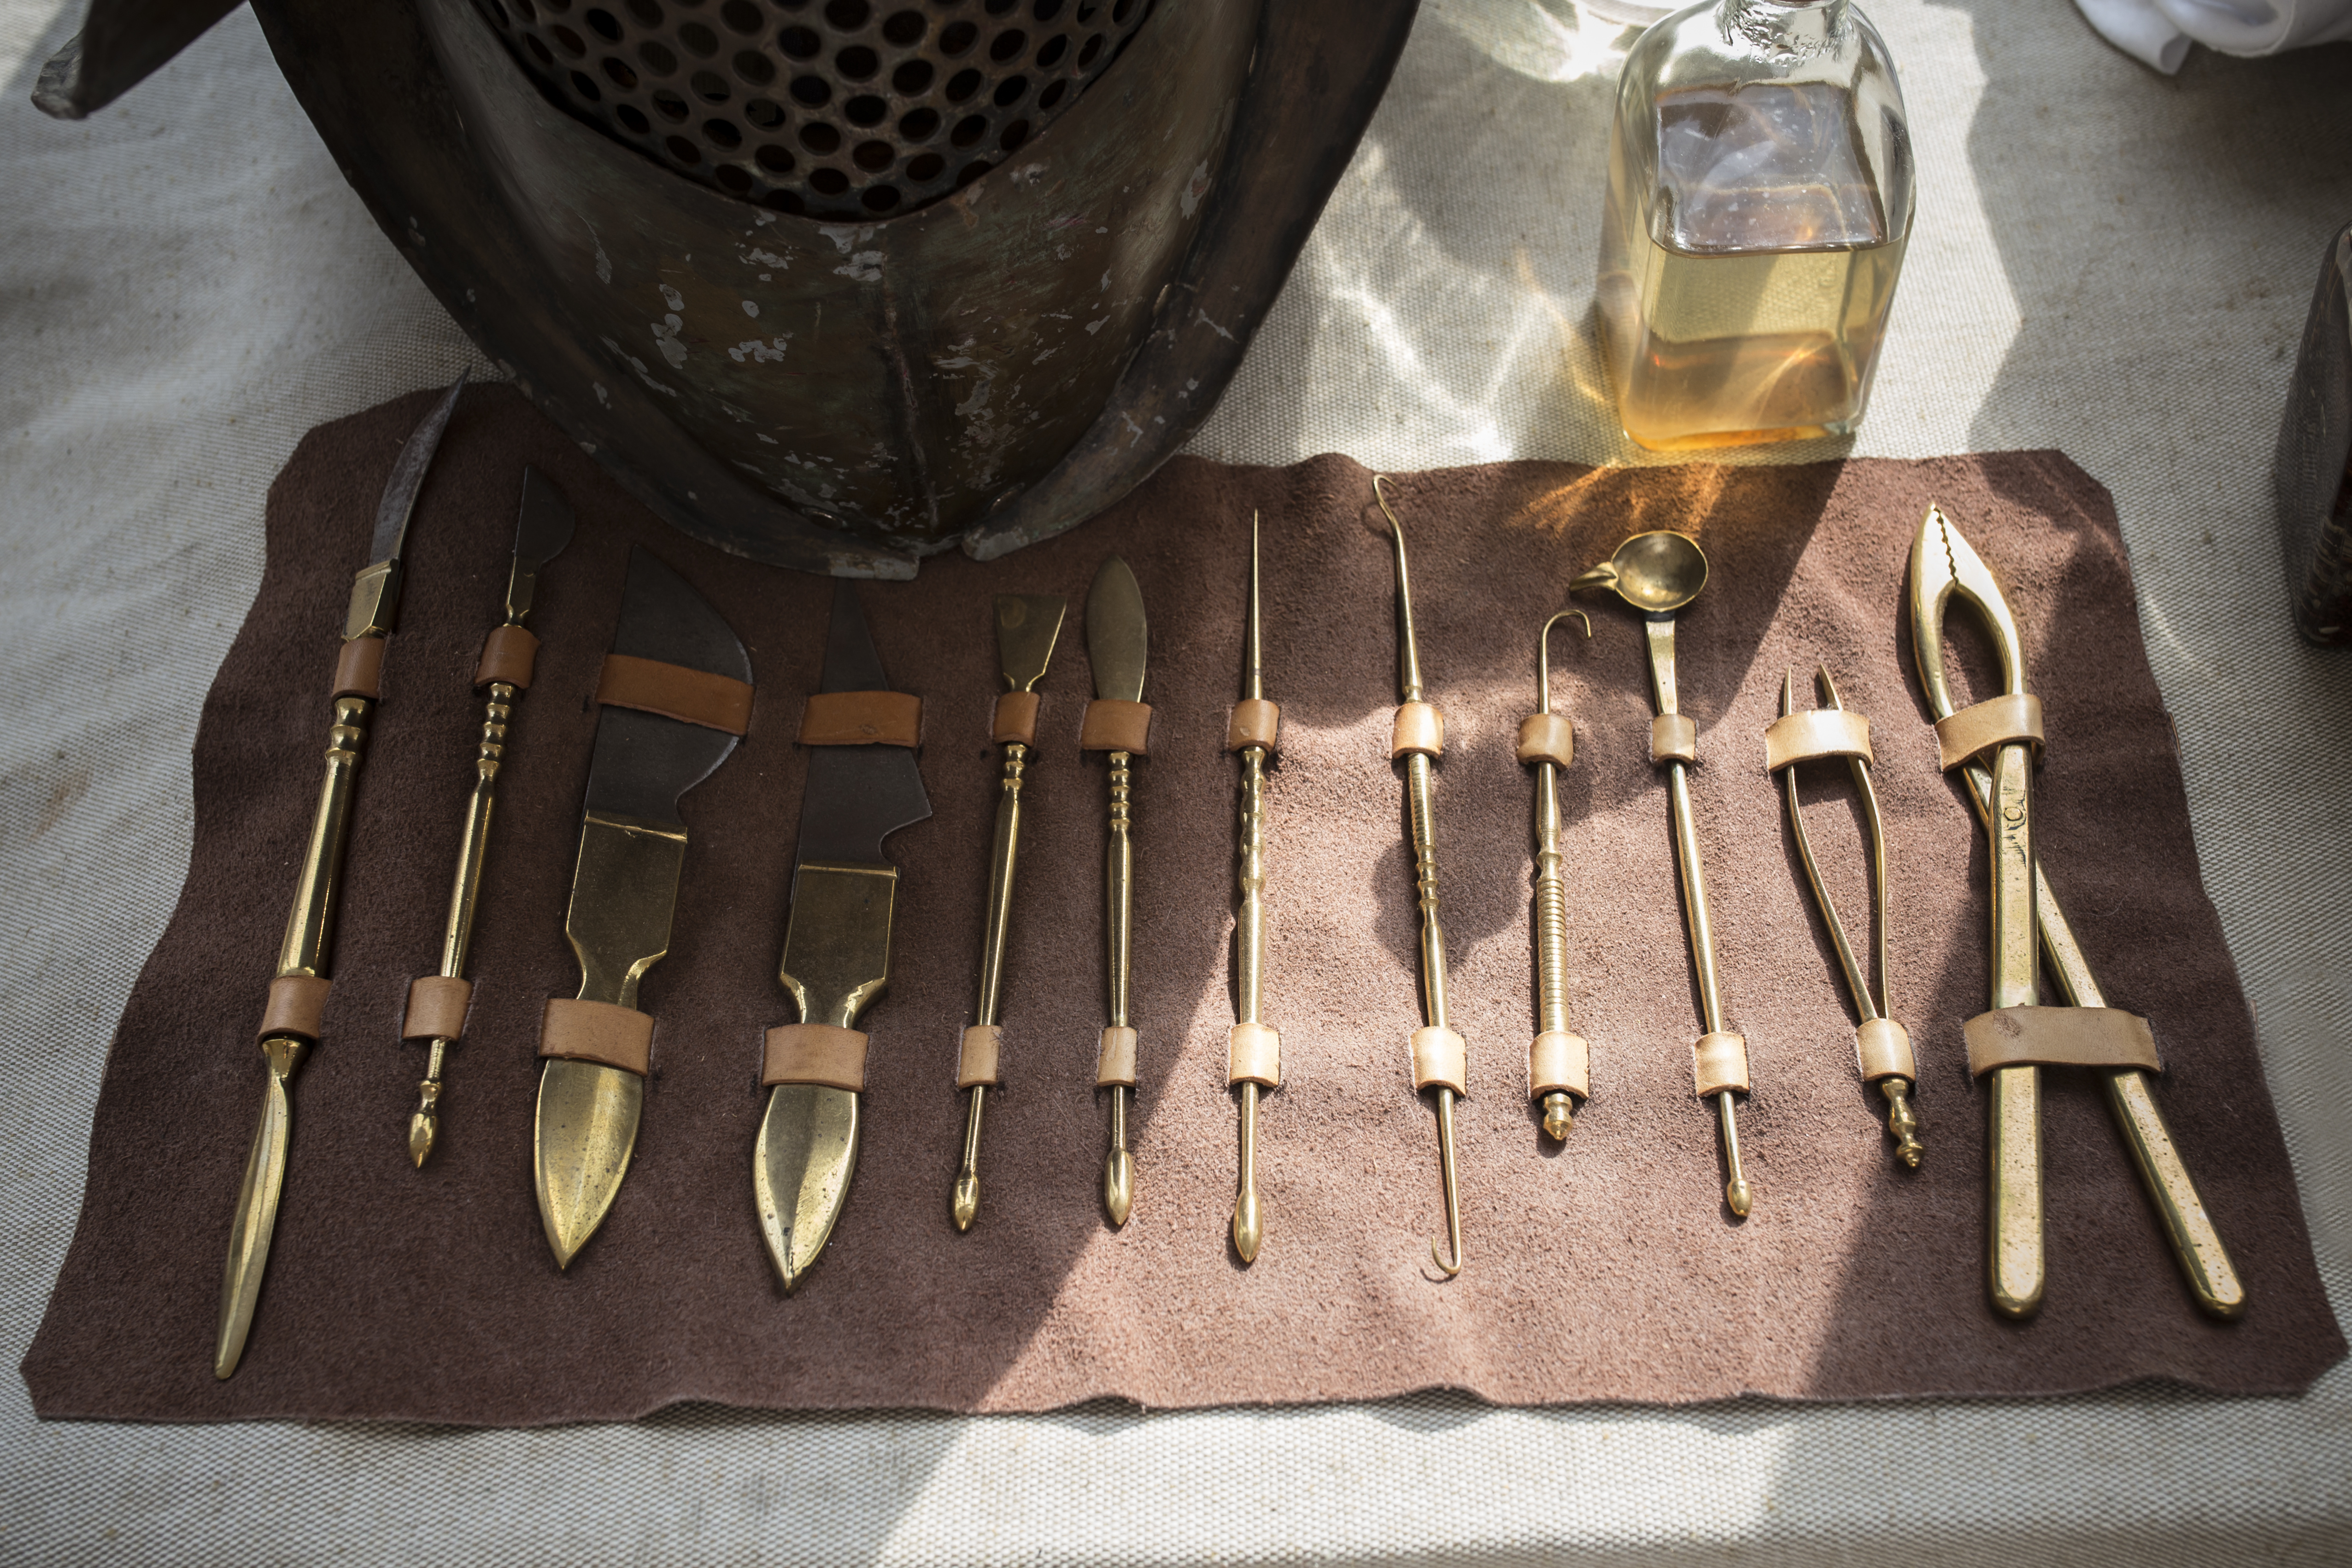 Set of old medical, surgical instruments illustrating past medical practices | Healthcare Roundup | Primaris